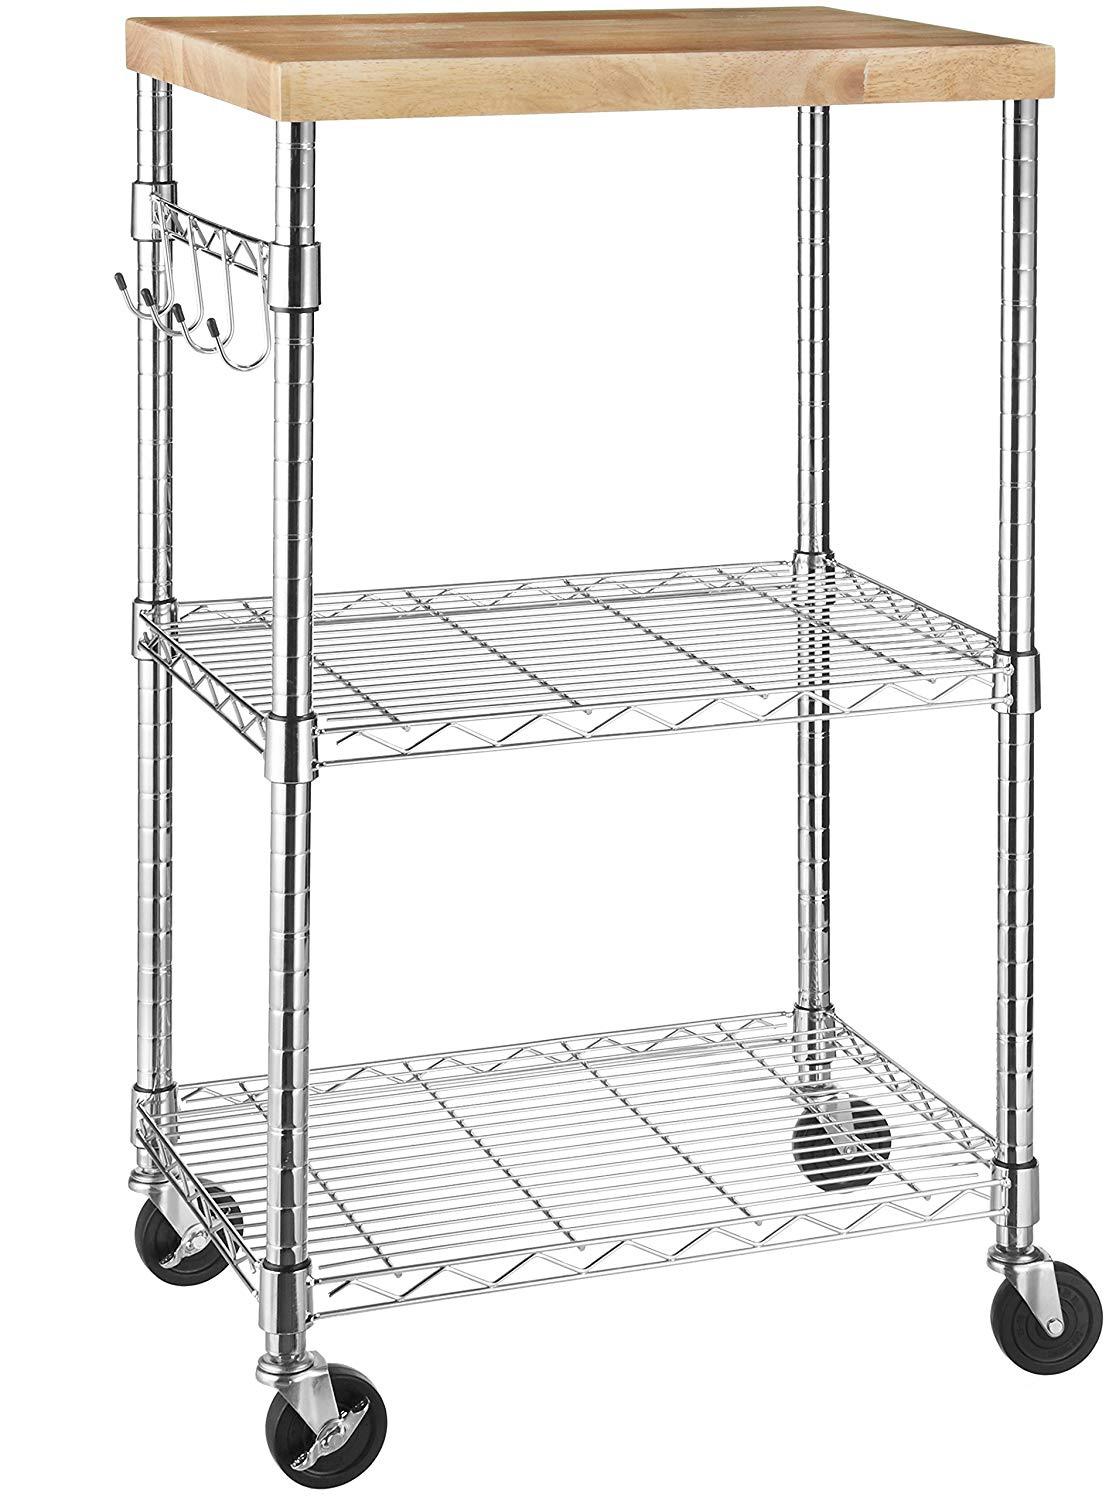 AmazonBasics Microwave Cart on Wheels